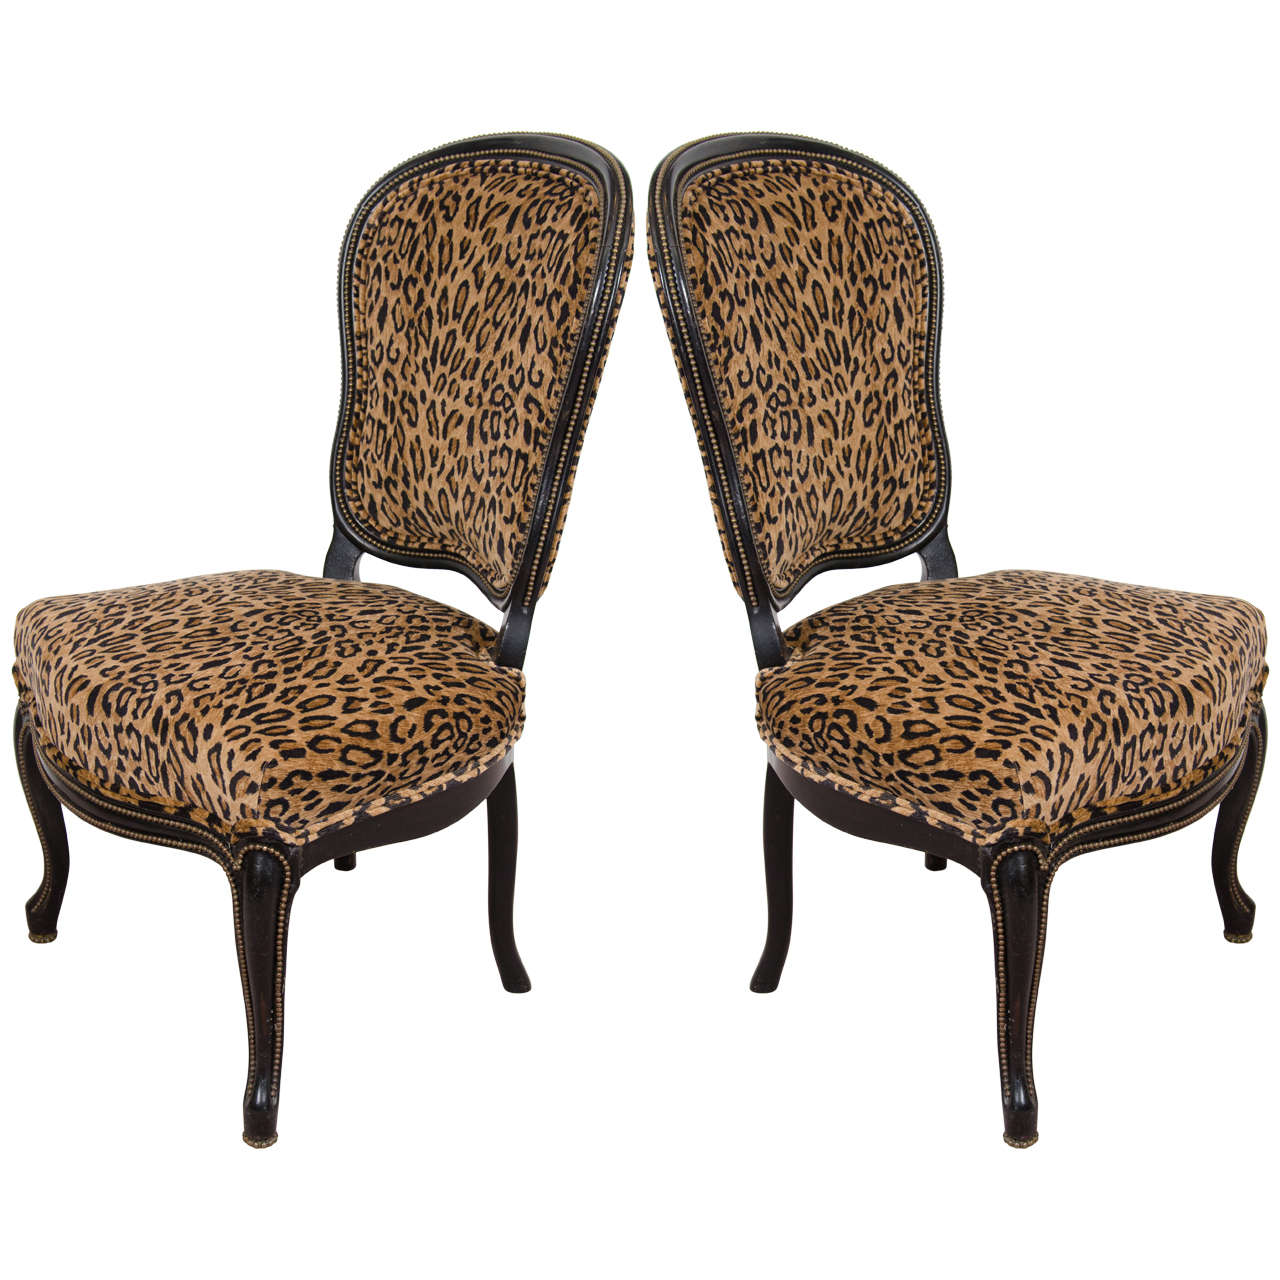 Leopard armchair - Pair Of Antique Ebonized Slipper Chairs With Velvet Leopard Print Upholstery 1